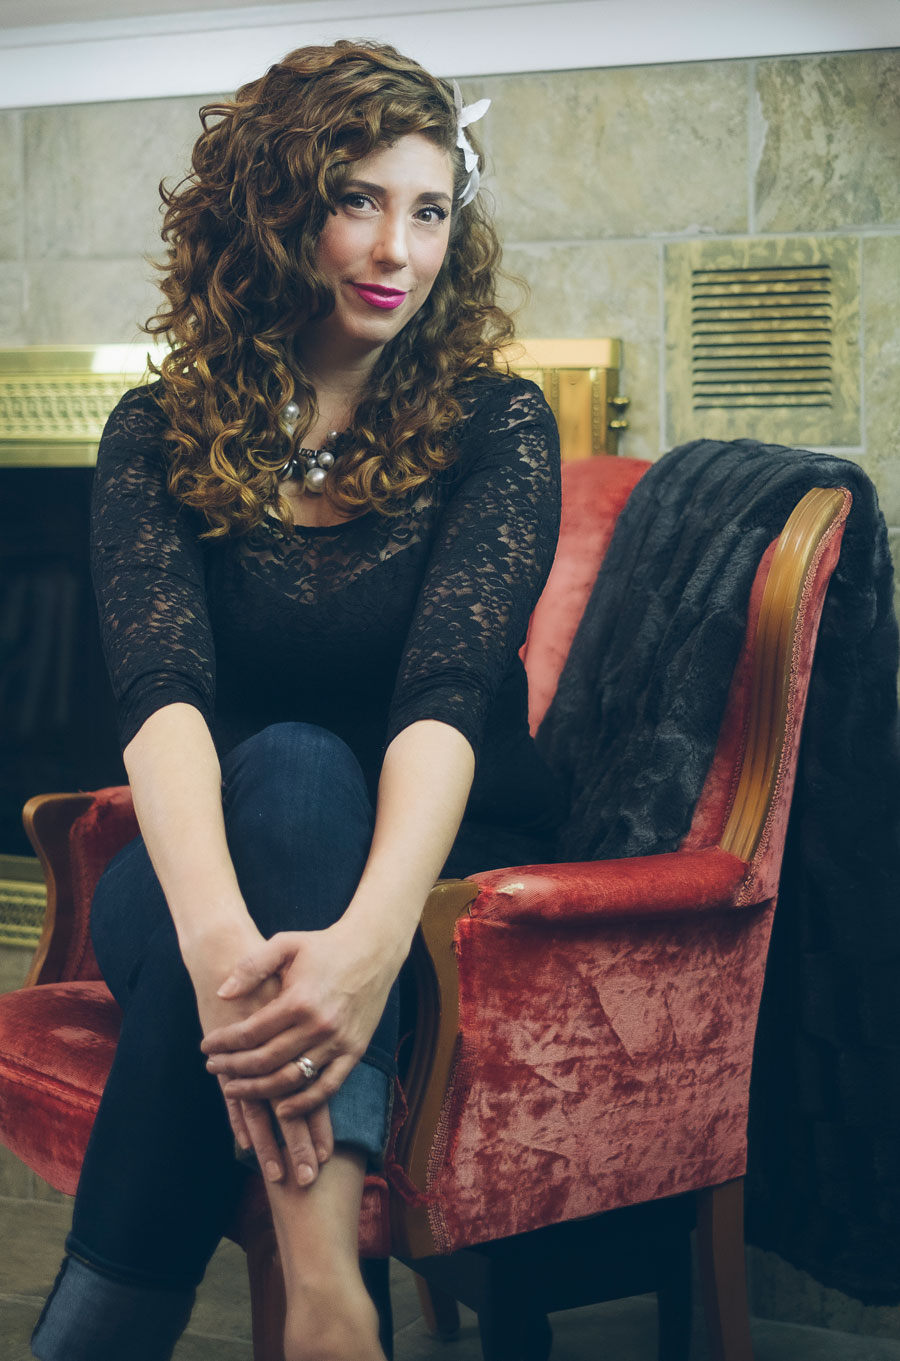 woman with long curly hair sits on red chair in parlour